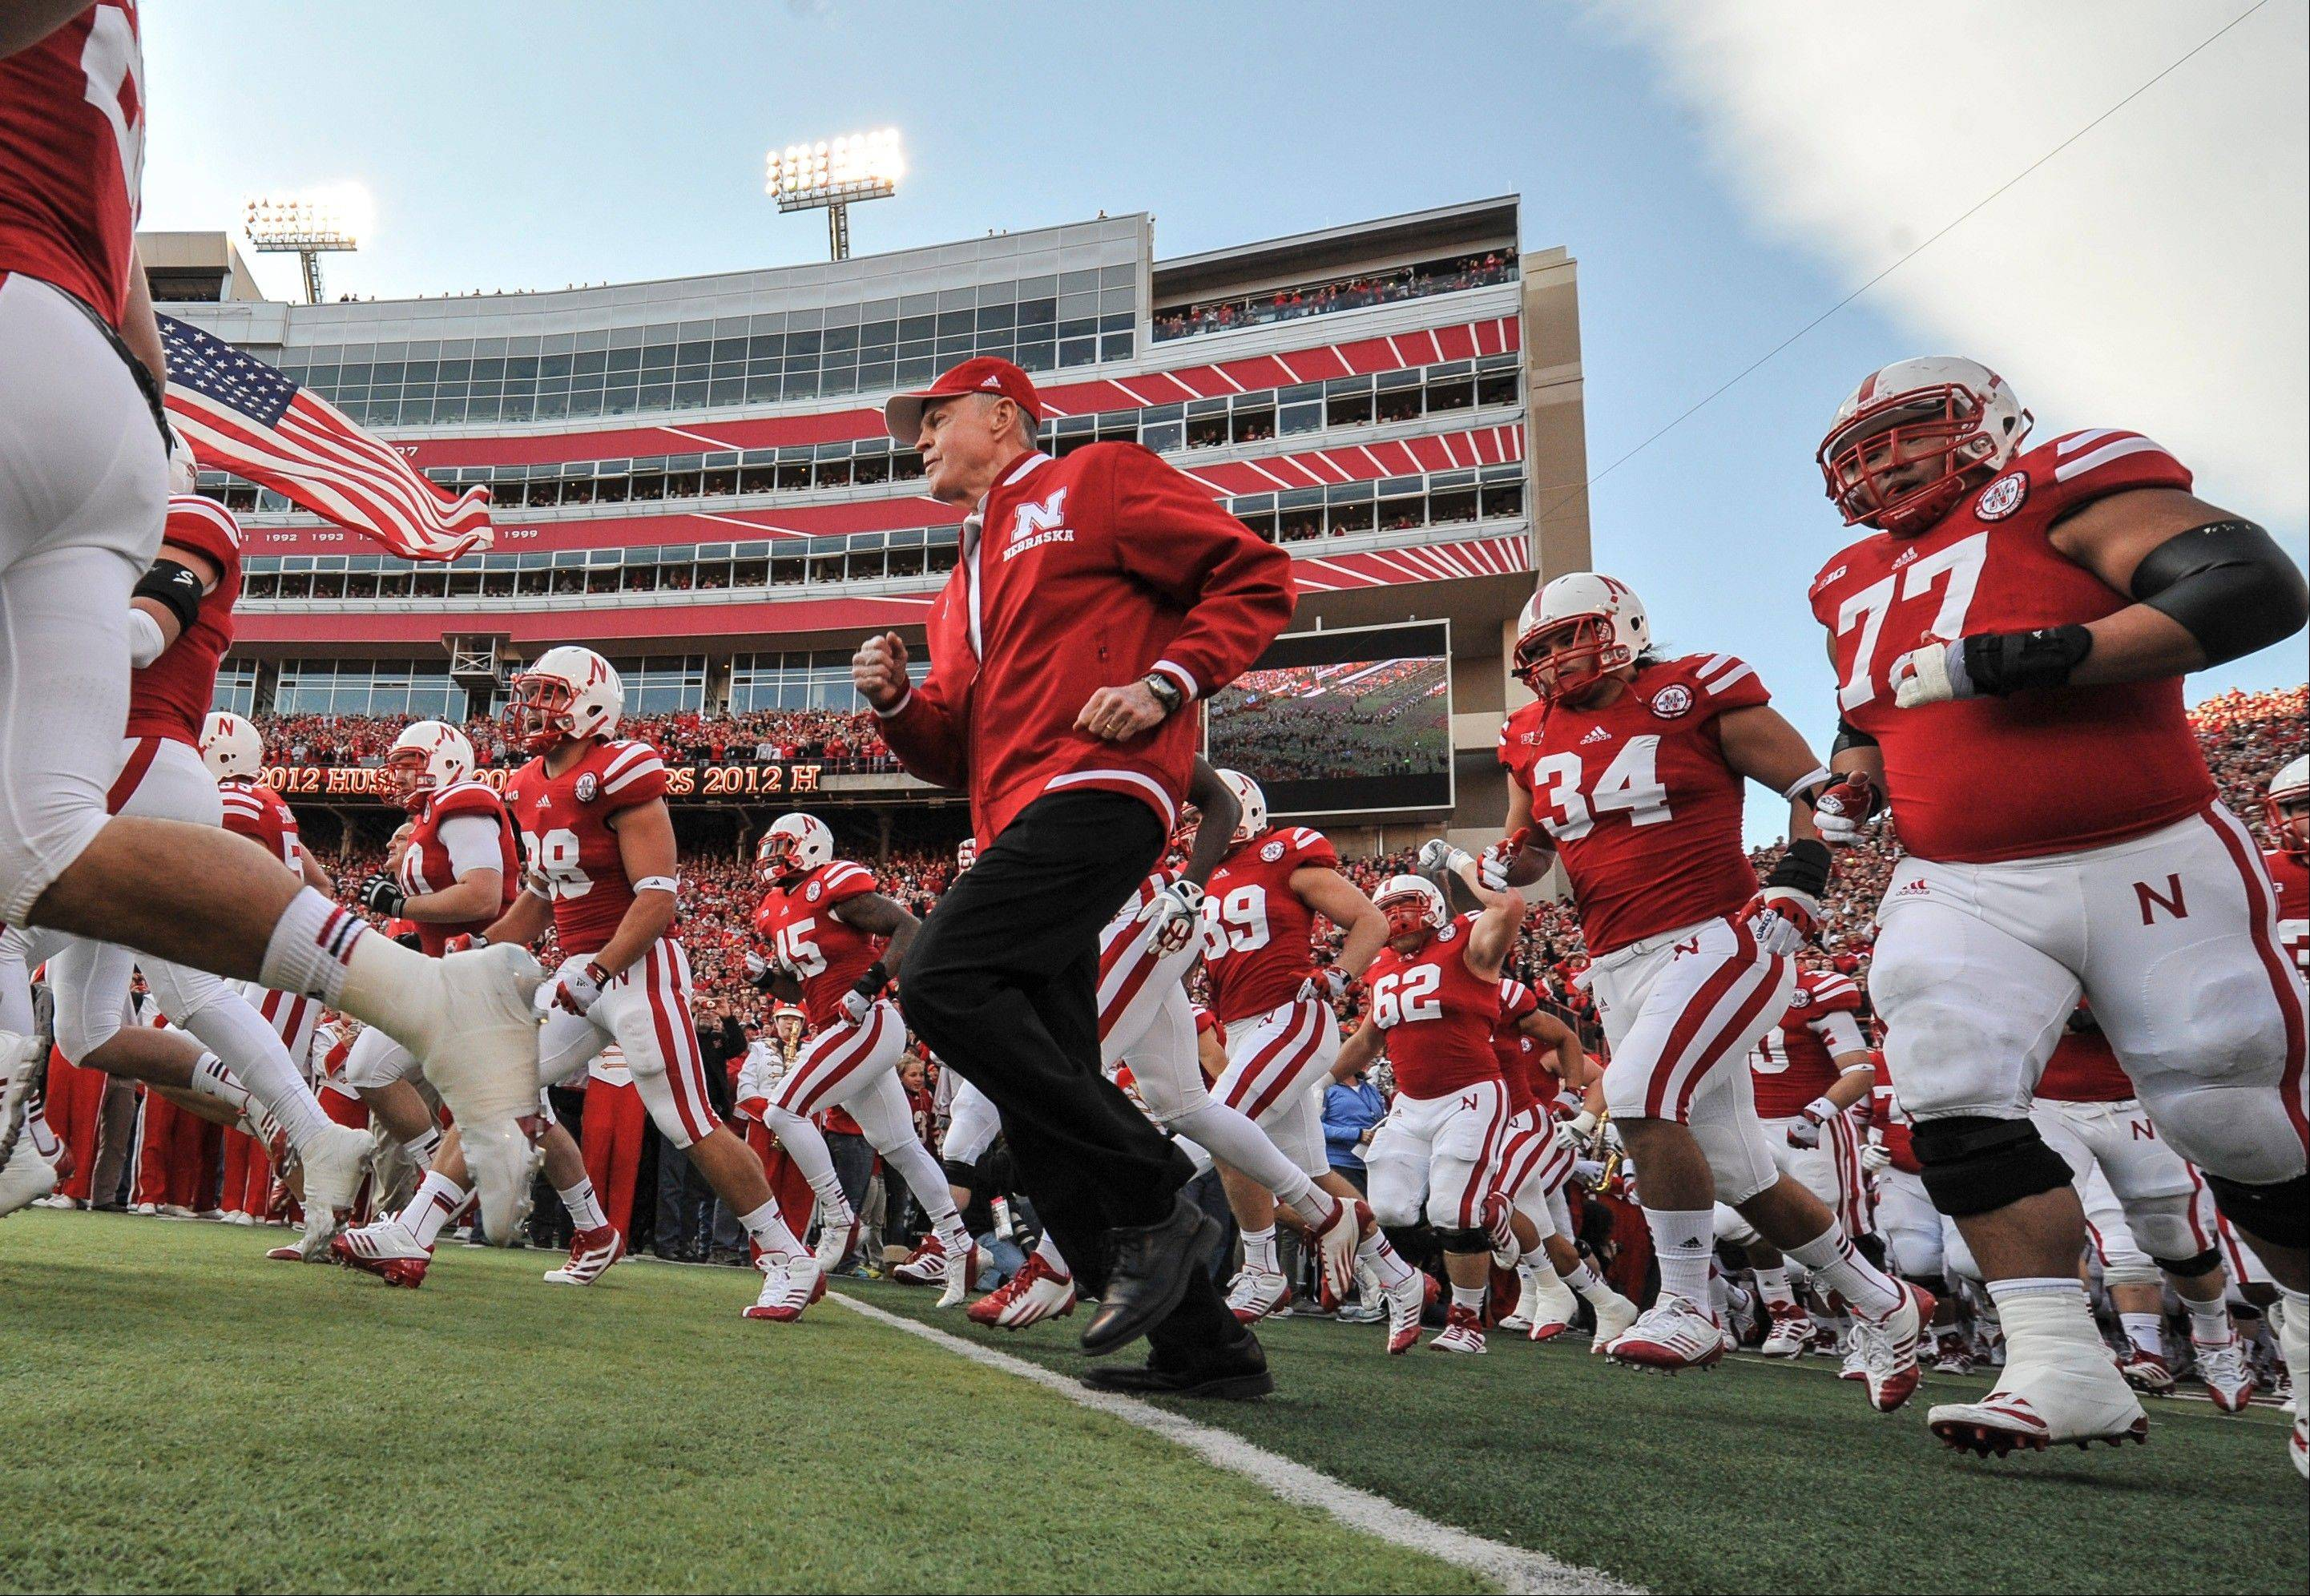 Nebraska's retiring athletic director and former coach Tom Osborne runs onto the field with players prior to Saturday's game against Minnesota, in Lincoln, Neb. Osborne was honored for his involvement in 500 Nebraska football games.